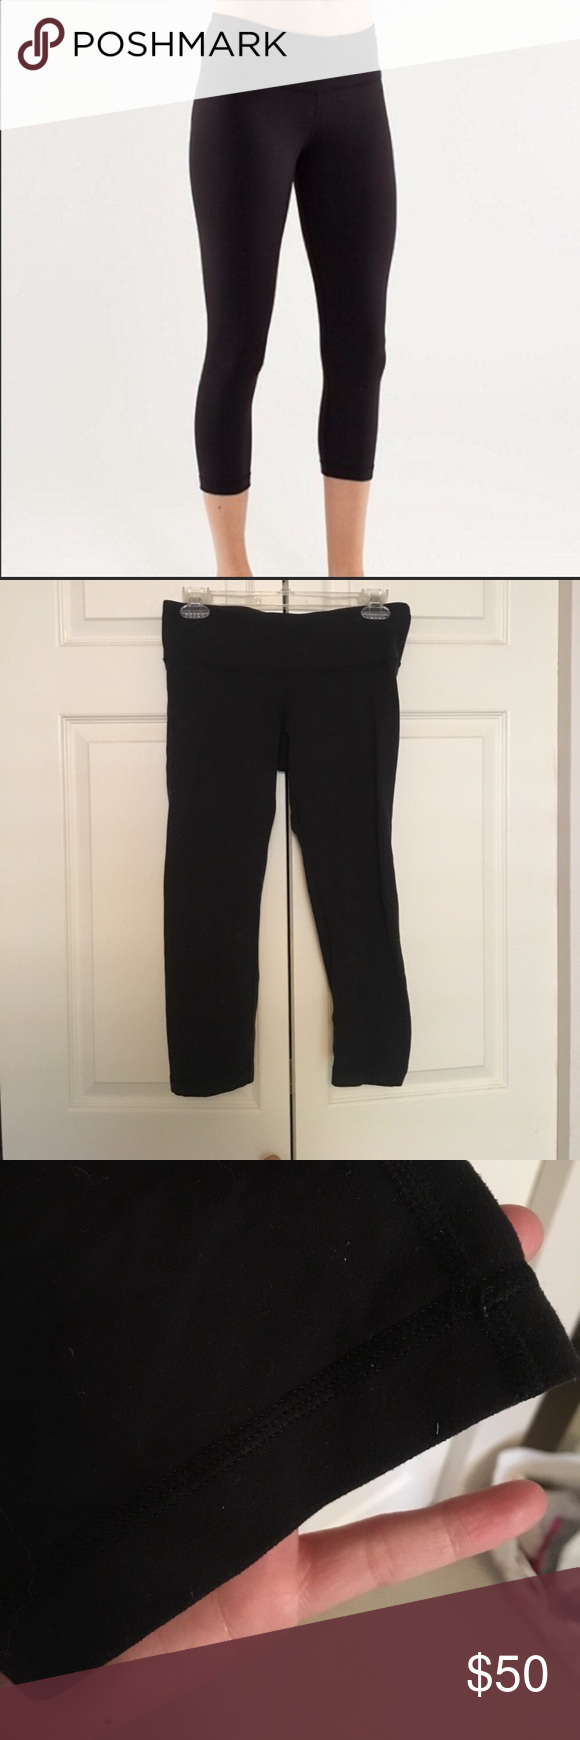 LuluLemon Cropped Wunder Under These pants go with everything- a lulu must have! These are in good condition, only thing is regular pilling in the crotch area (as shown in the pics). Other than that, no major signs of wear: no rips, tears, stains, or loose threads! lululemon athletica Pants Ankle & Cropped